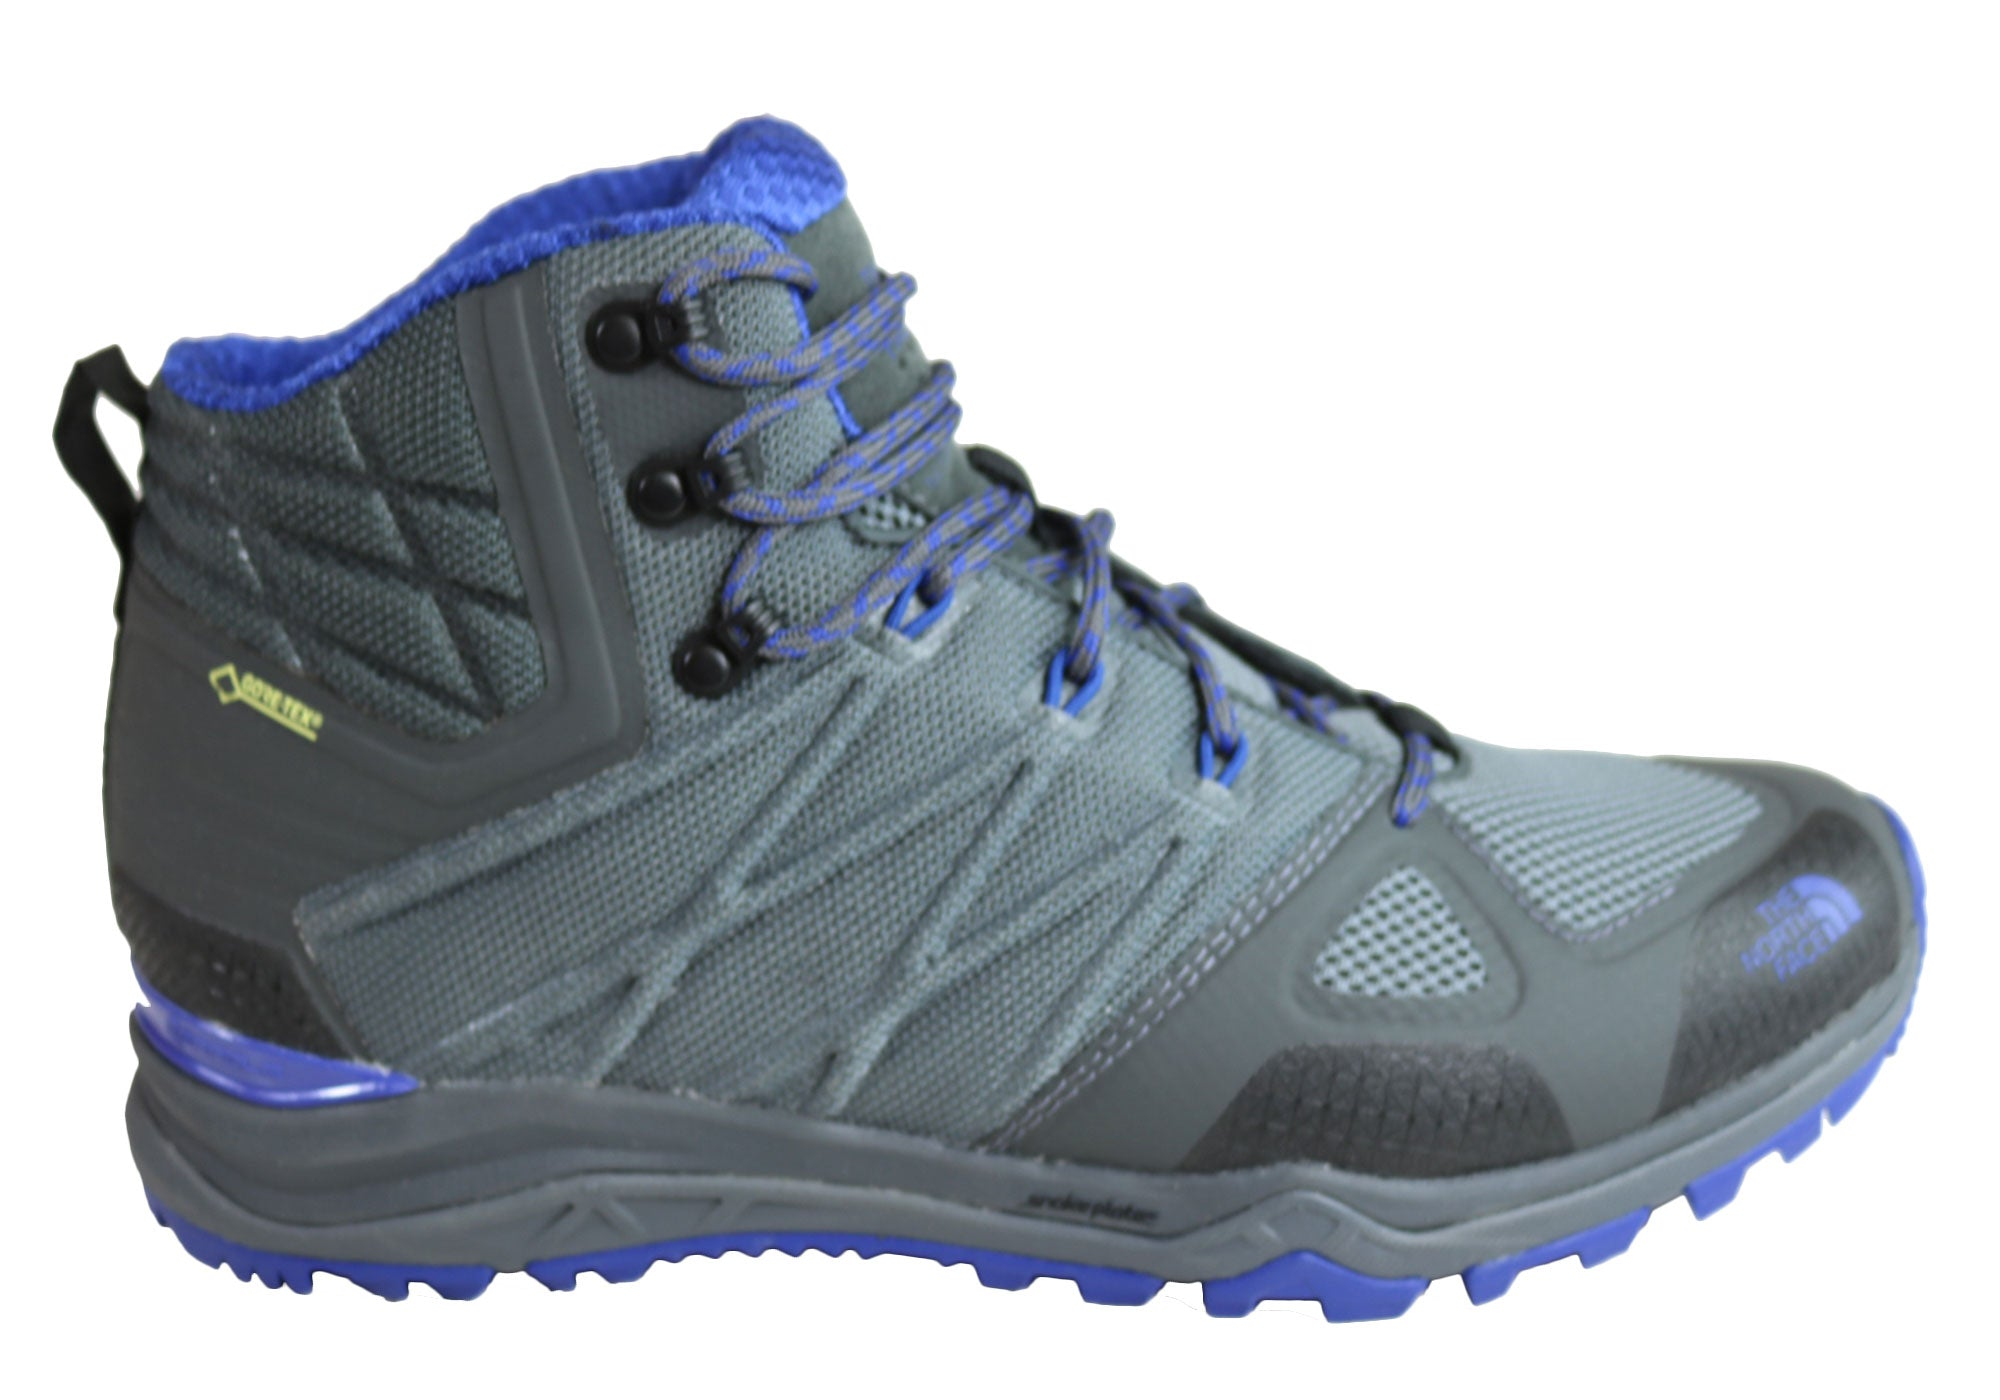 0e97d60361c The North Face Mens Ultra Fastpack II Mid GTX Waterproof Hiking ...